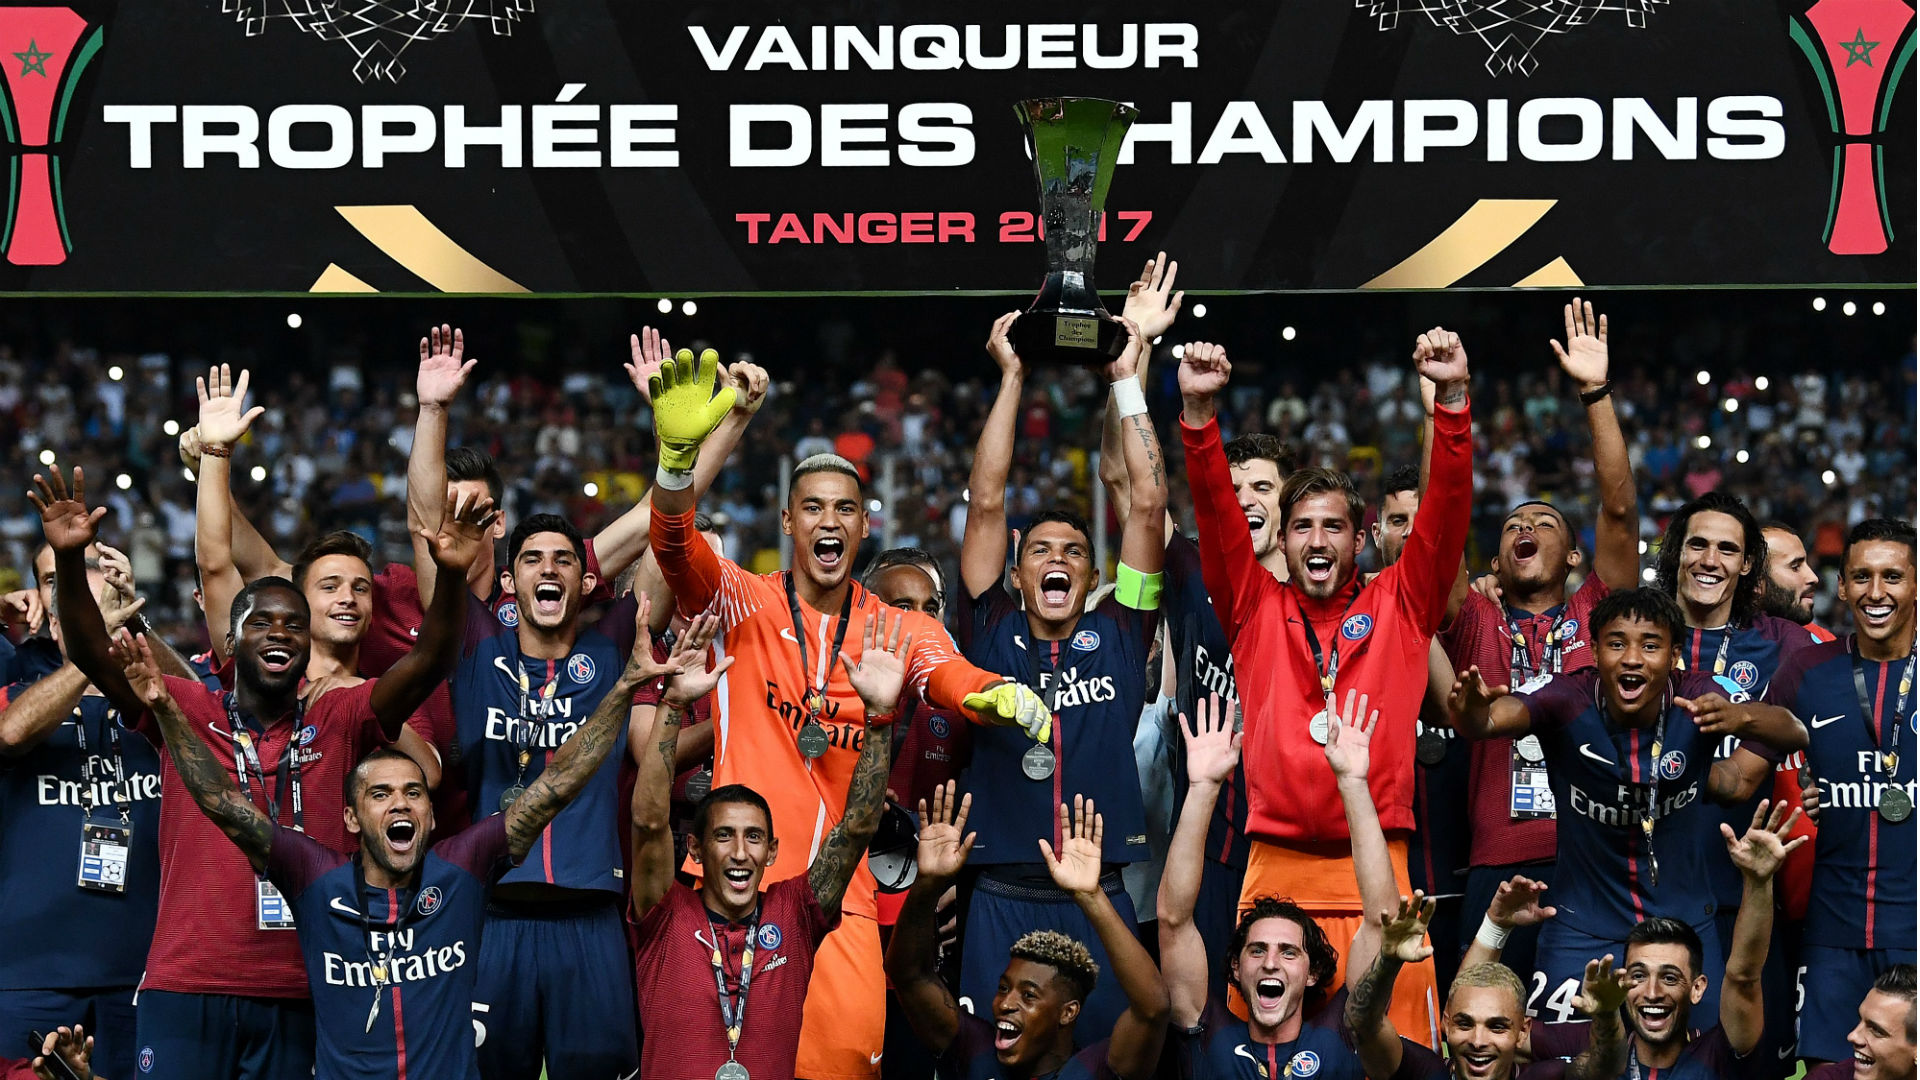 PSG win 2017 French Trophee des Champions in Tangiers